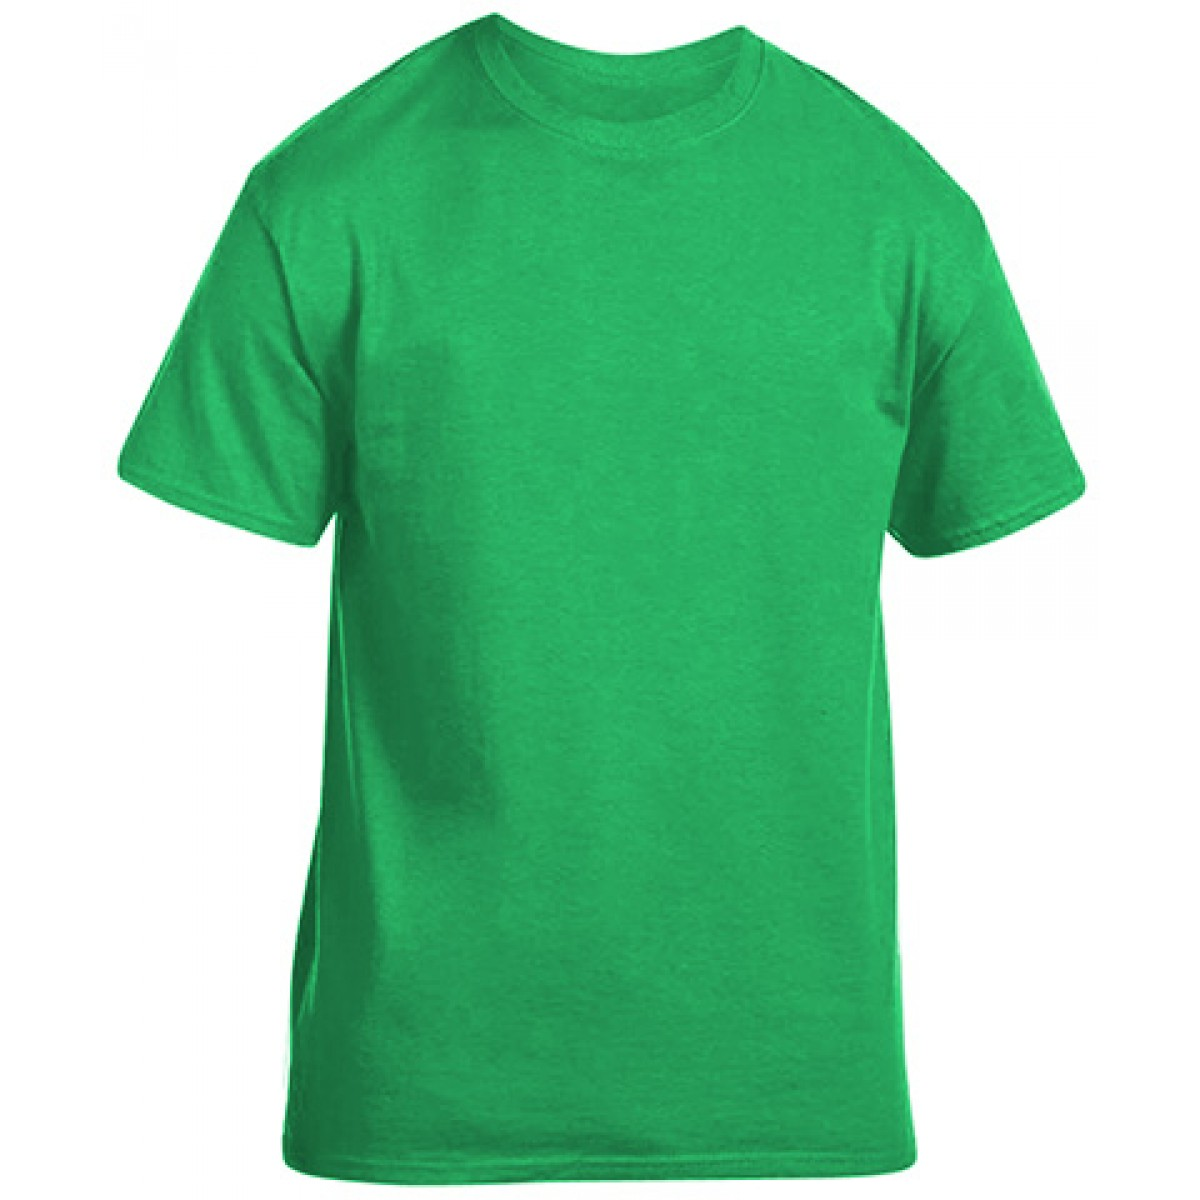 Soft 100% Cotton T-Shirt-Electric Green -XL